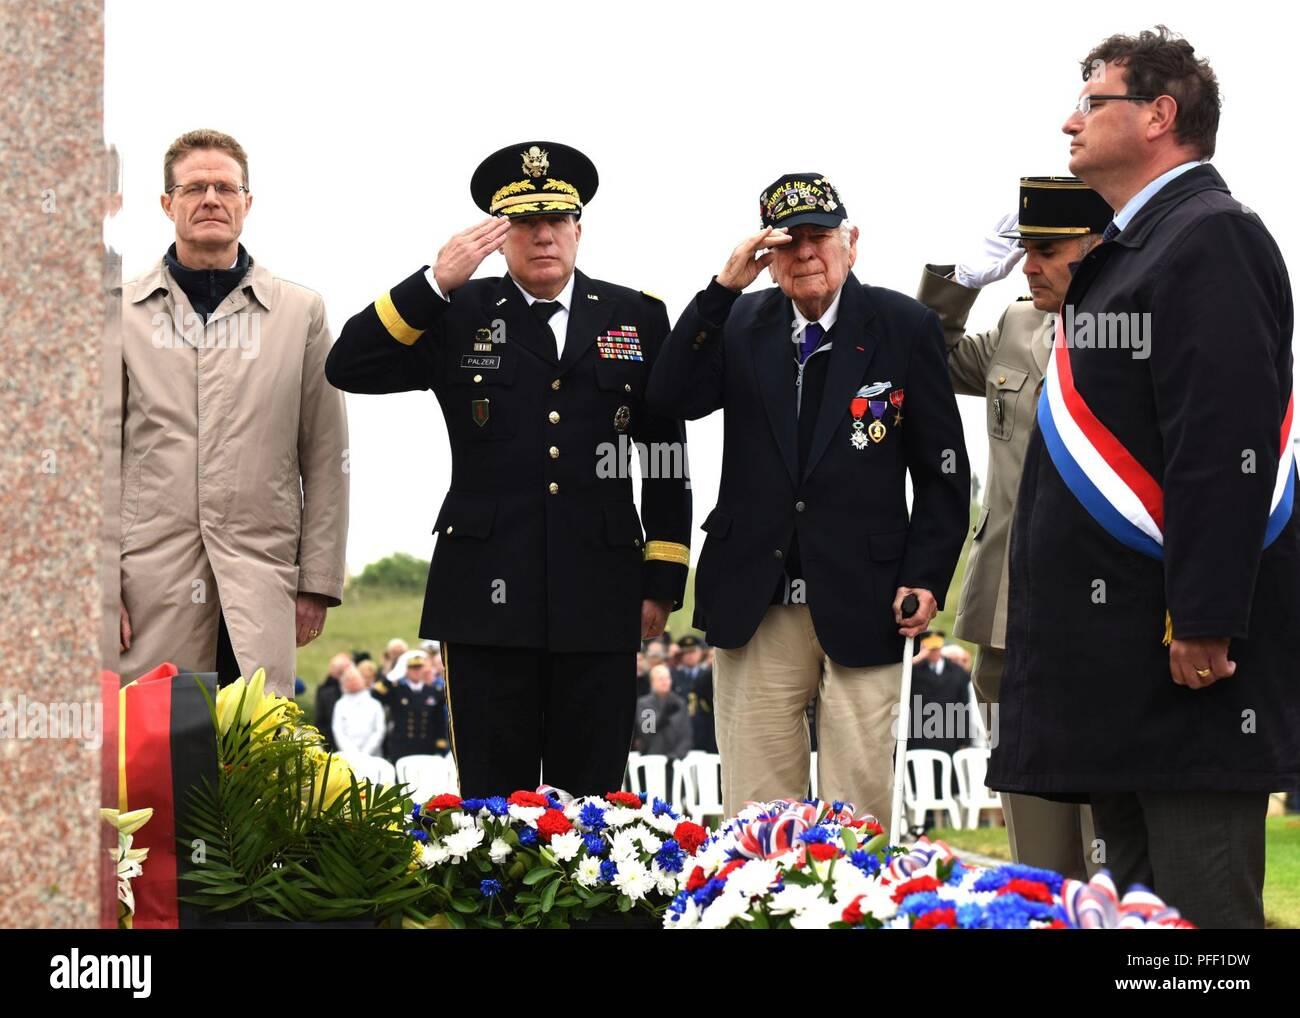 SAINTE-MARIE-DU-MONT, France (June 6, 2018) D-Day veteran John Roman (center) and Maj. Gen. Mark W. Palzer, commander of the 79th Theater Sustainment Command (center left), salute for the playing of French and U.S. taps during the Utah Beach Federal Monument Ceremony. This year marks the 74th anniversary of Operation Overlord, the Allied invasion of Normandy on June 6, 1944 -- most commonly known as D-Day. An epic multinational amphibious and airborne operation, D-Day forged partnerships and reinforced transatlantic bonds that remain strong today. Overall, U.S. service members from 20 units in Stock Photo